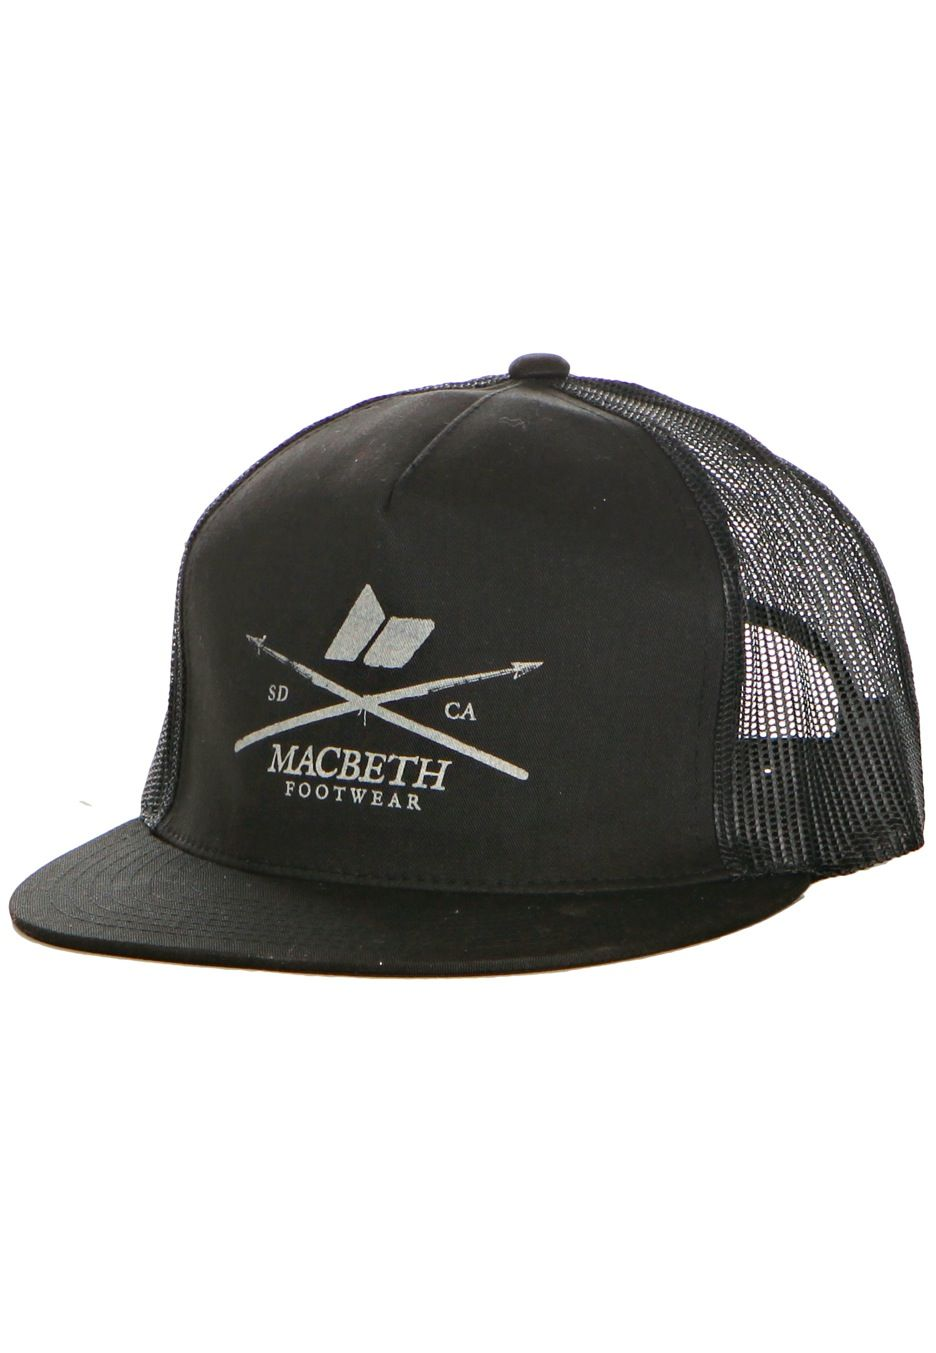 d81a2d82f44d8b Trucker hat design. Macbeth Footwear Holiday11 | Macbeth | Hats, Cap ...